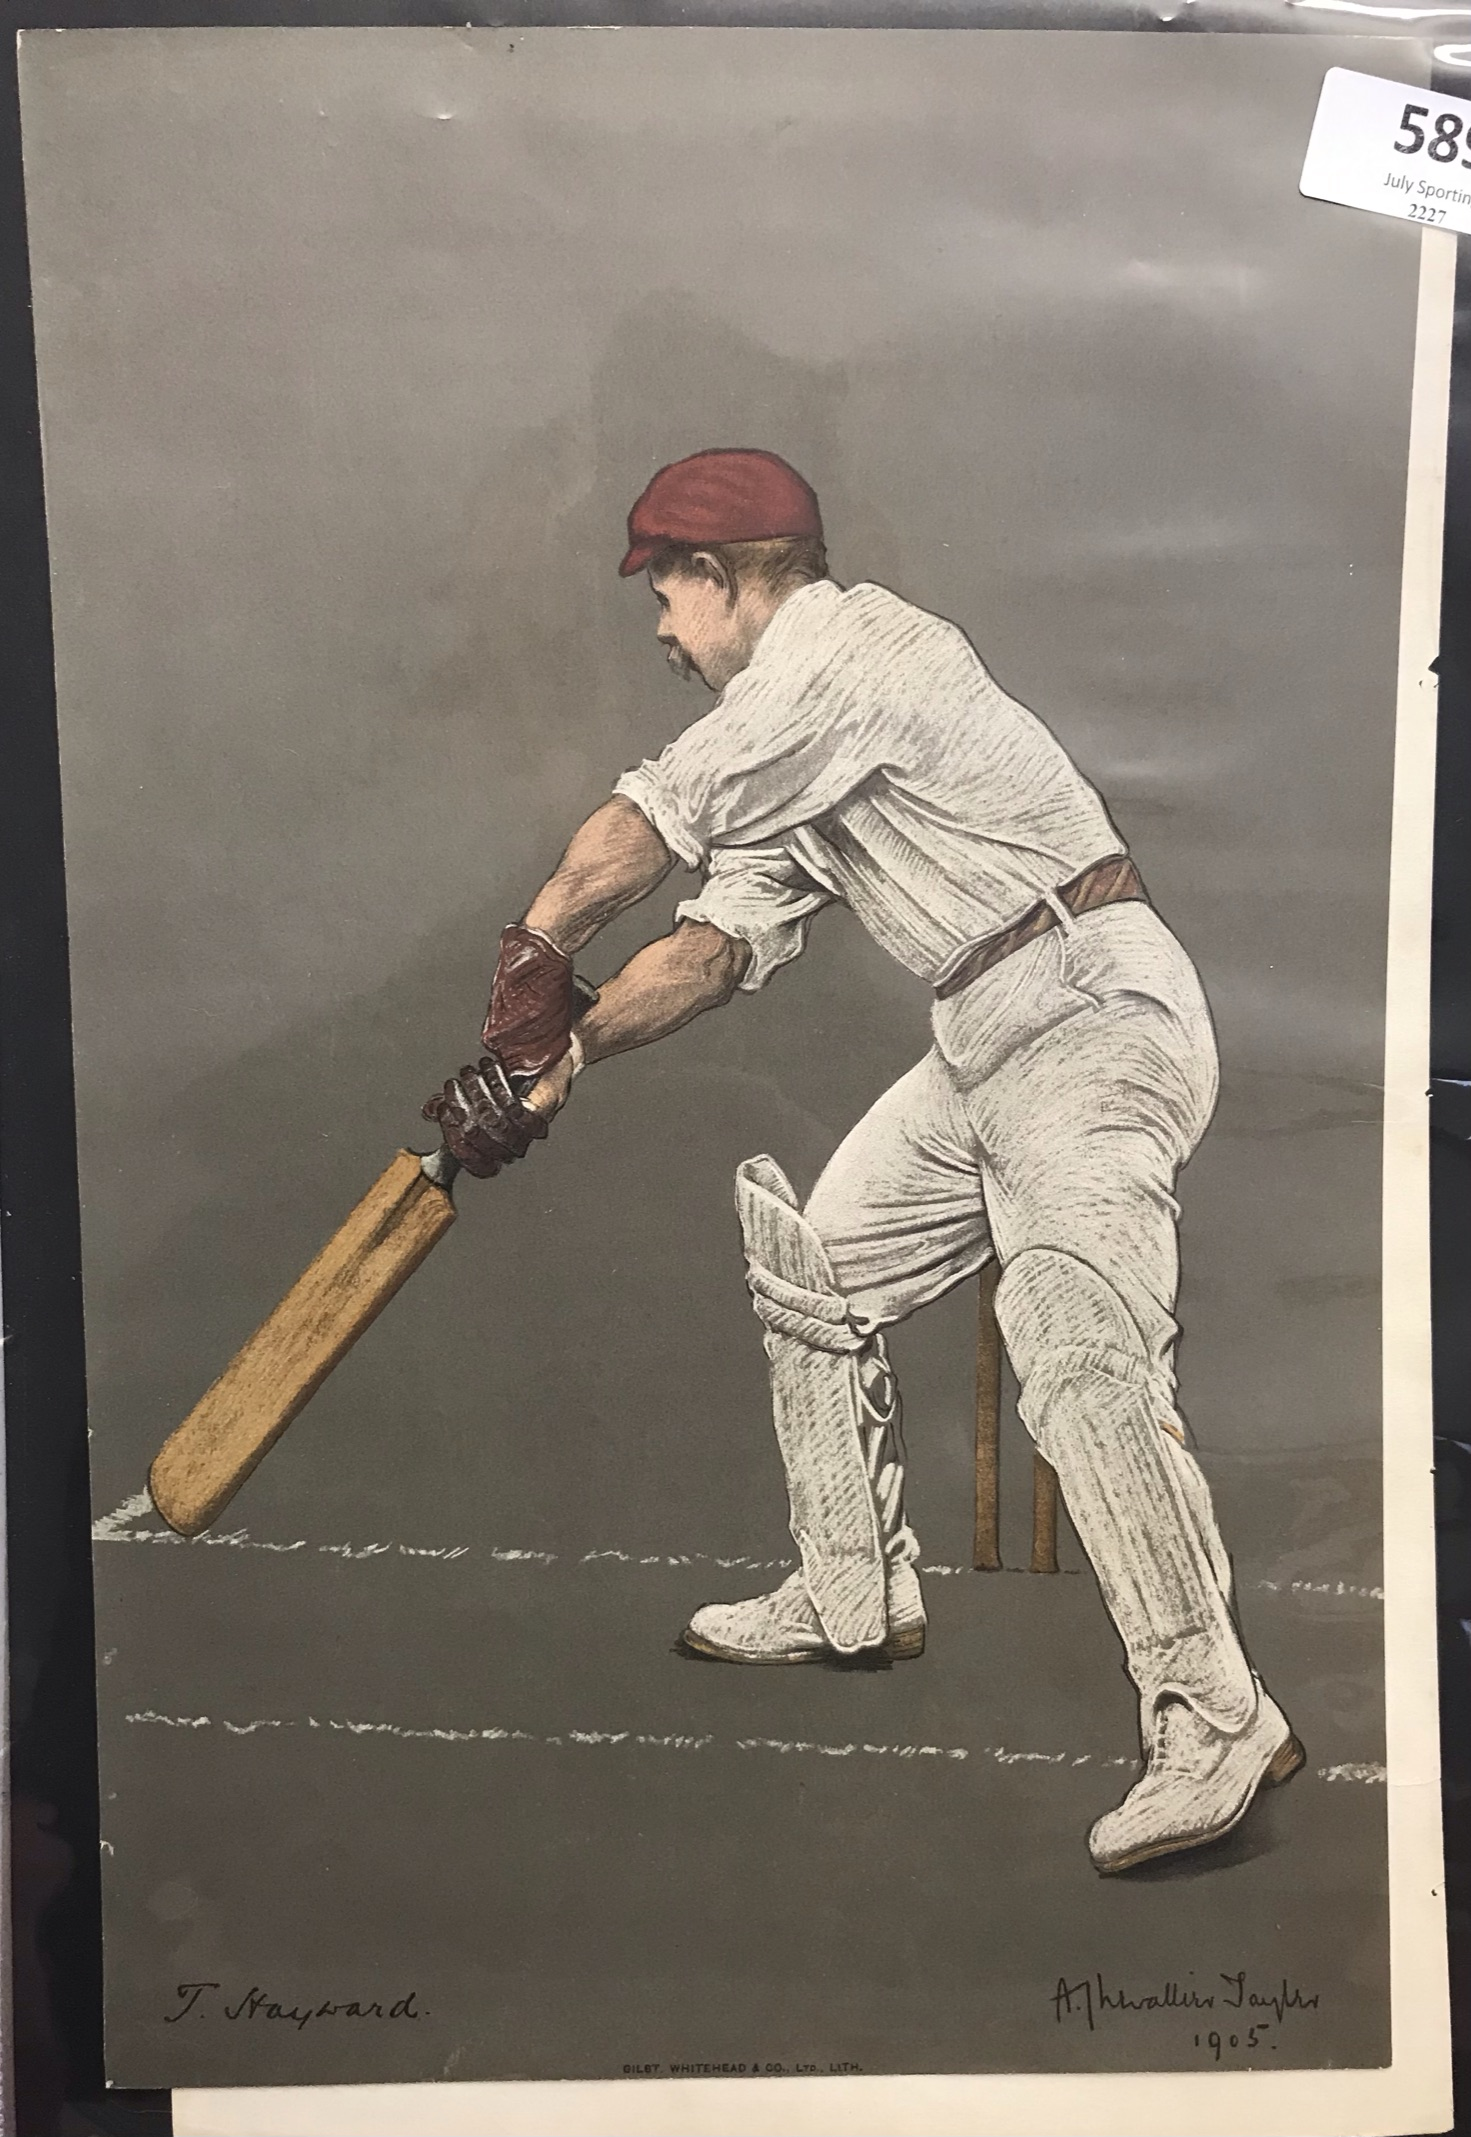 Surrey 1905 T Hayward, Test Match player, 1899 lots of averages, 1904 3000+ runs and 11 centuries,